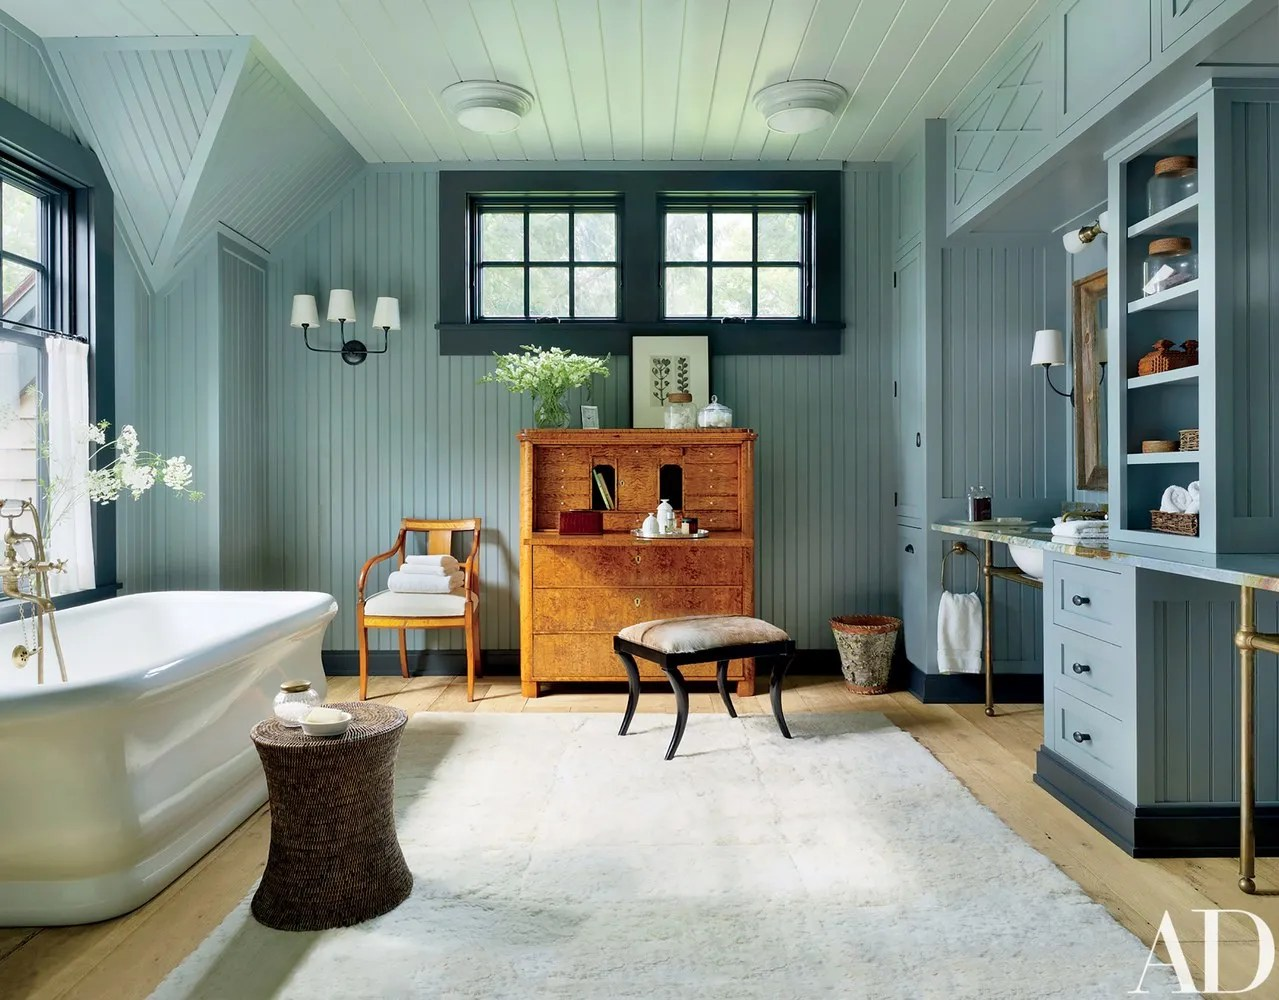 Two Tone Dining Room 10 Best Bathroom Paint Colors Photos | Architectural Digest